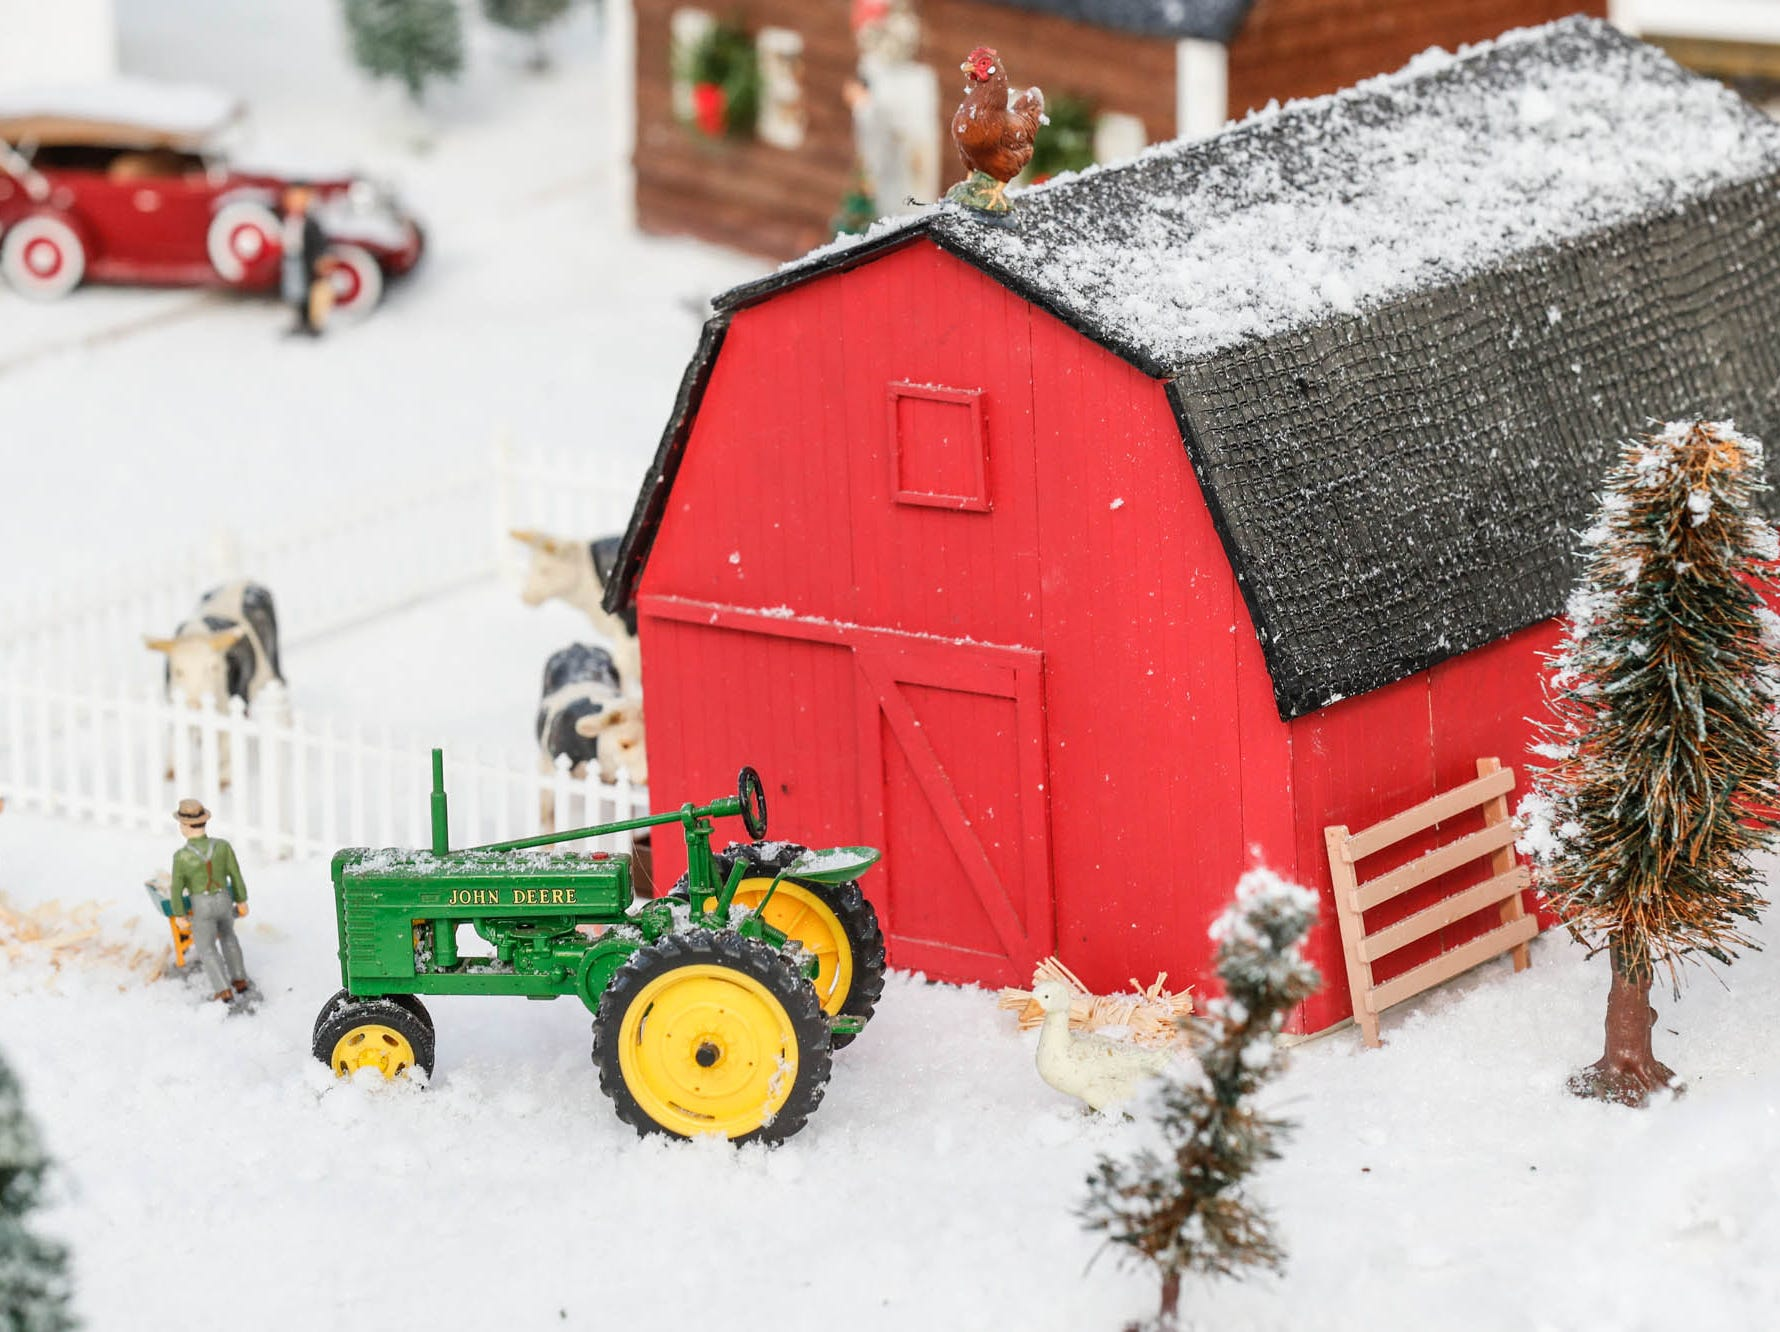 A town is ringed with train tracks in the Conservatory Crossing holiday display at the Garfield Park Conservatory on Saturday, Dec. 29, 2018.